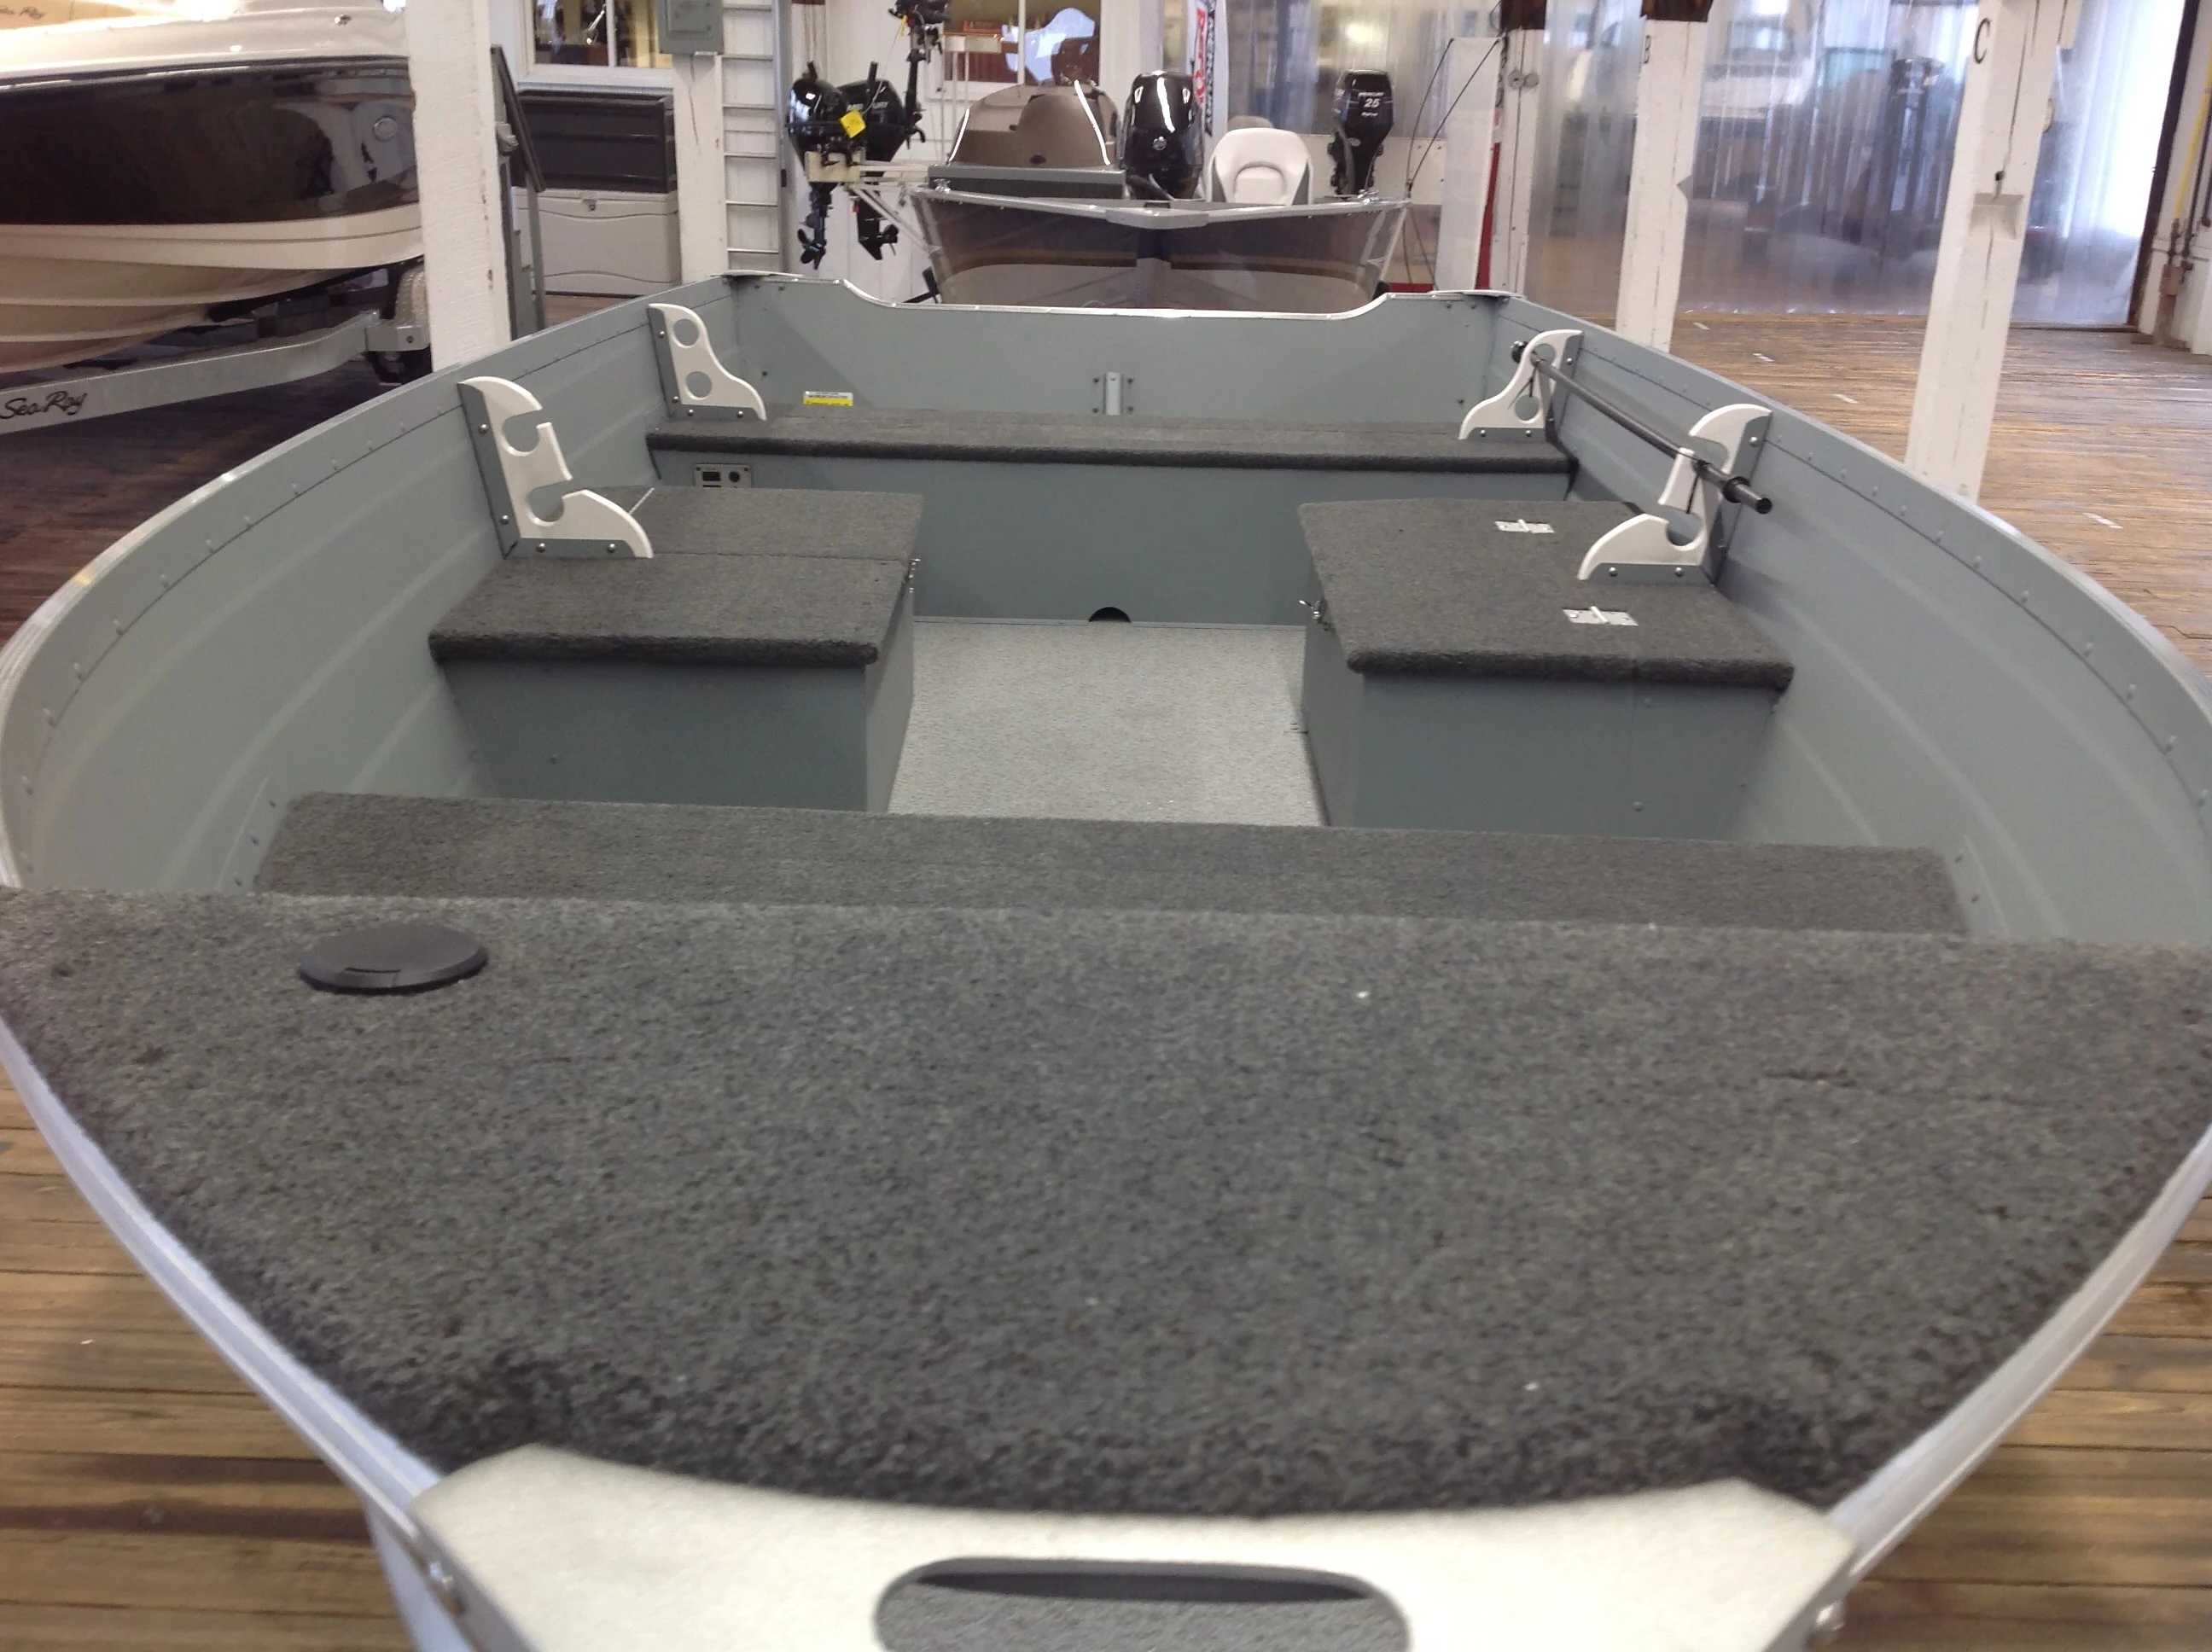 2021 Smoker Craft boat for sale, model of the boat is 14 Big Fish Tl Dlx & Image # 3 of 7